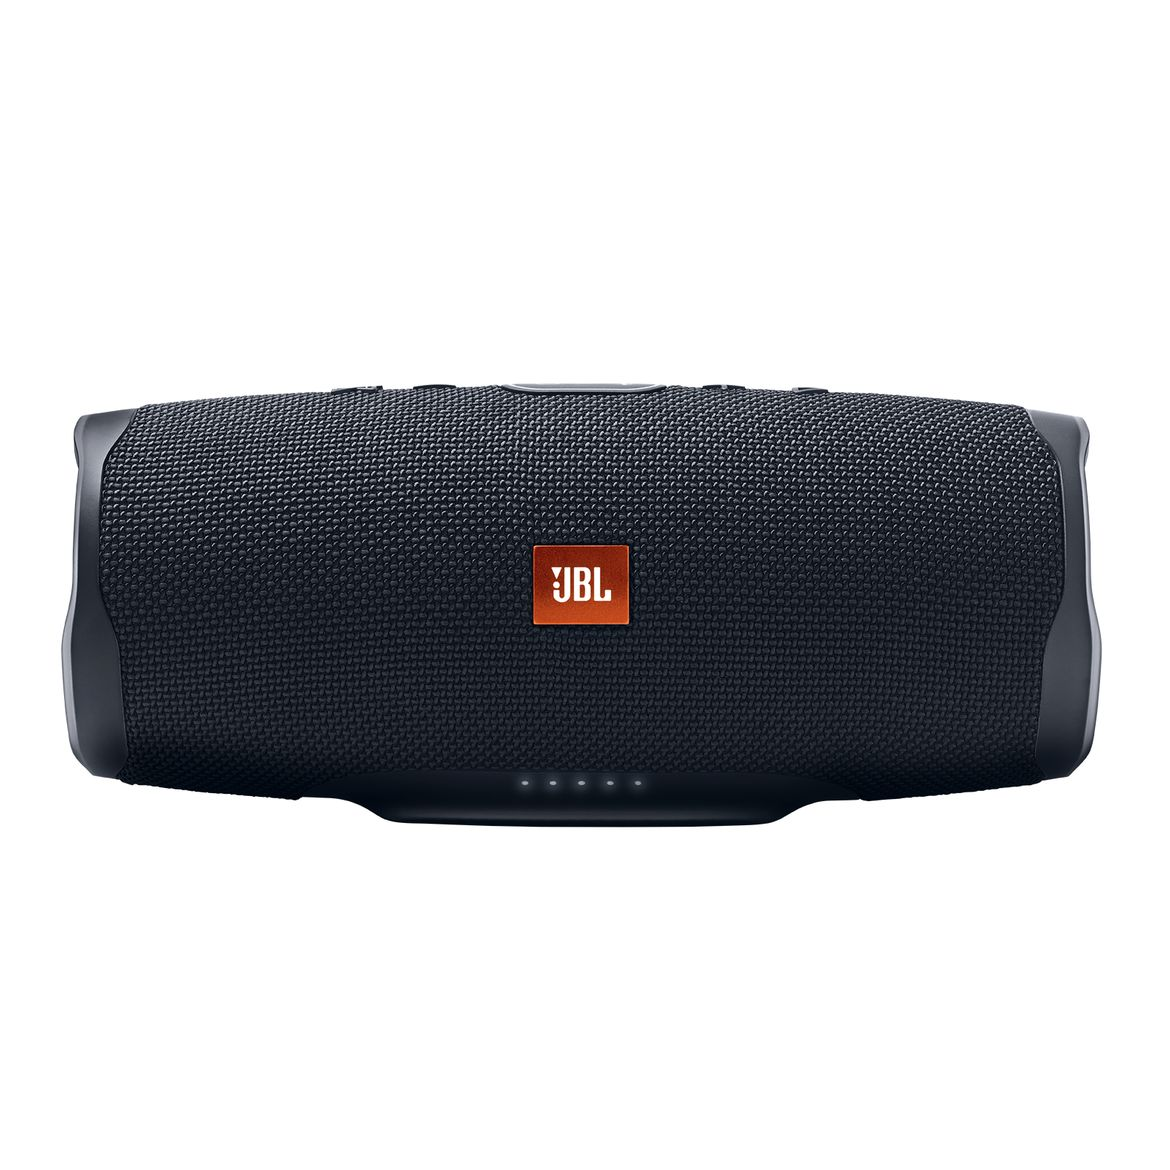 JBL_Charge4_Front_Midnight_Black_0053_x1